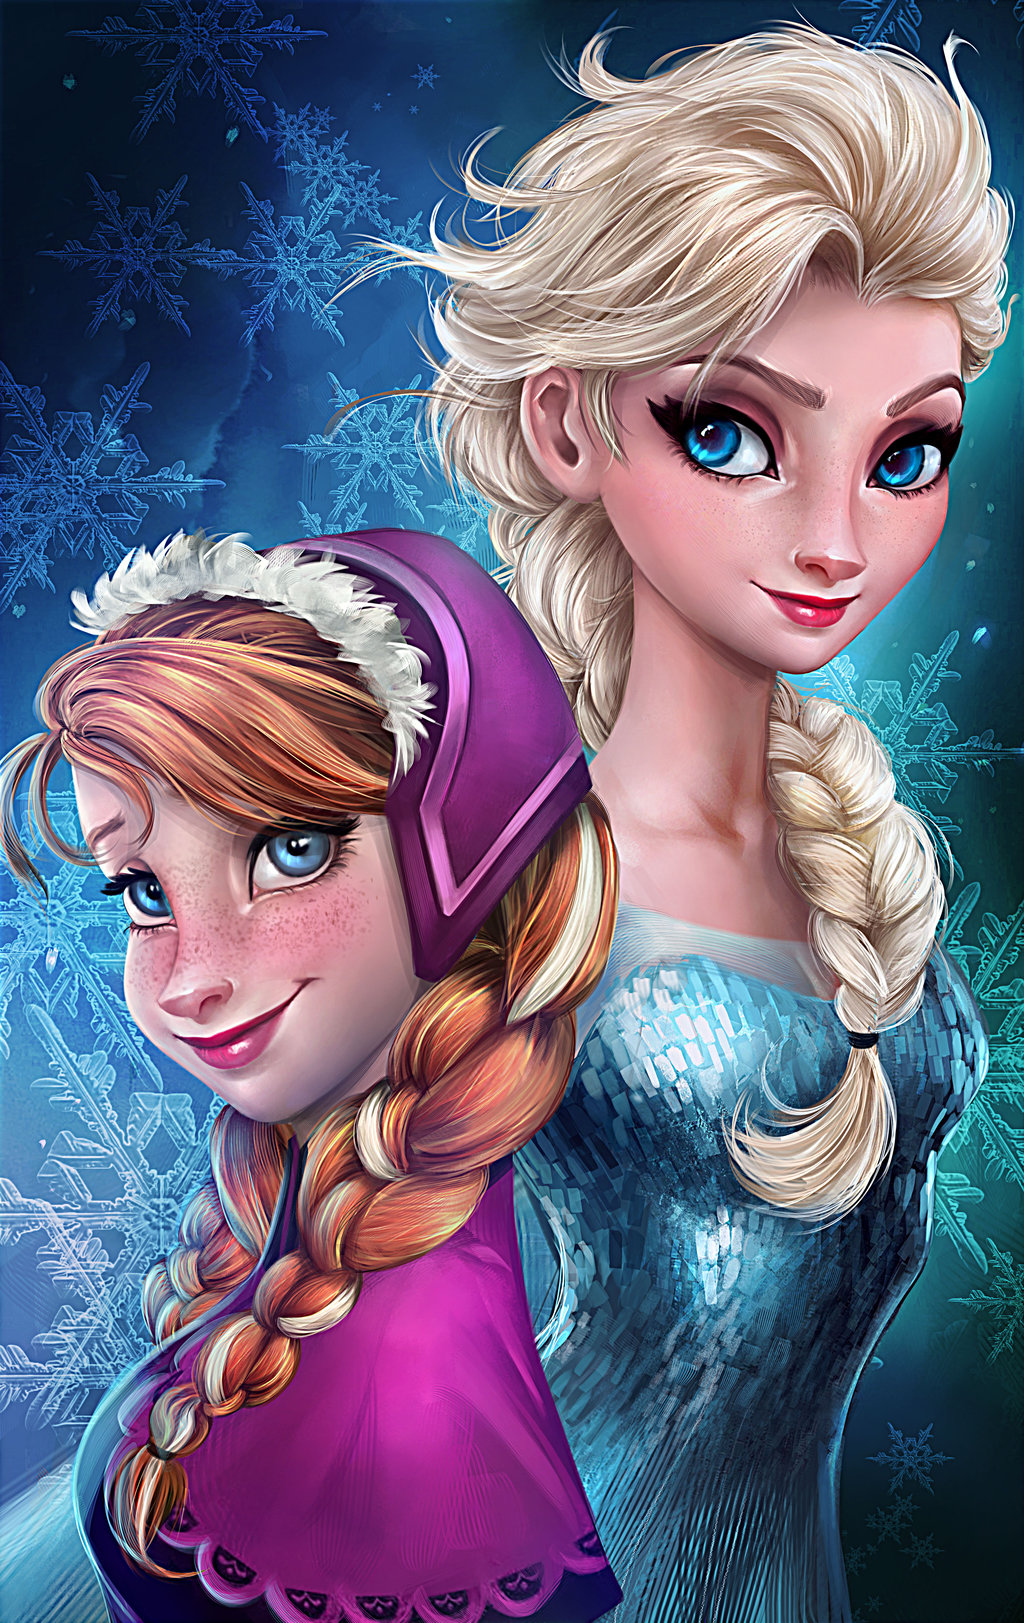 Anna and elsa princess anna fan art 37115848 fanpop - Princesse anna et elsa ...